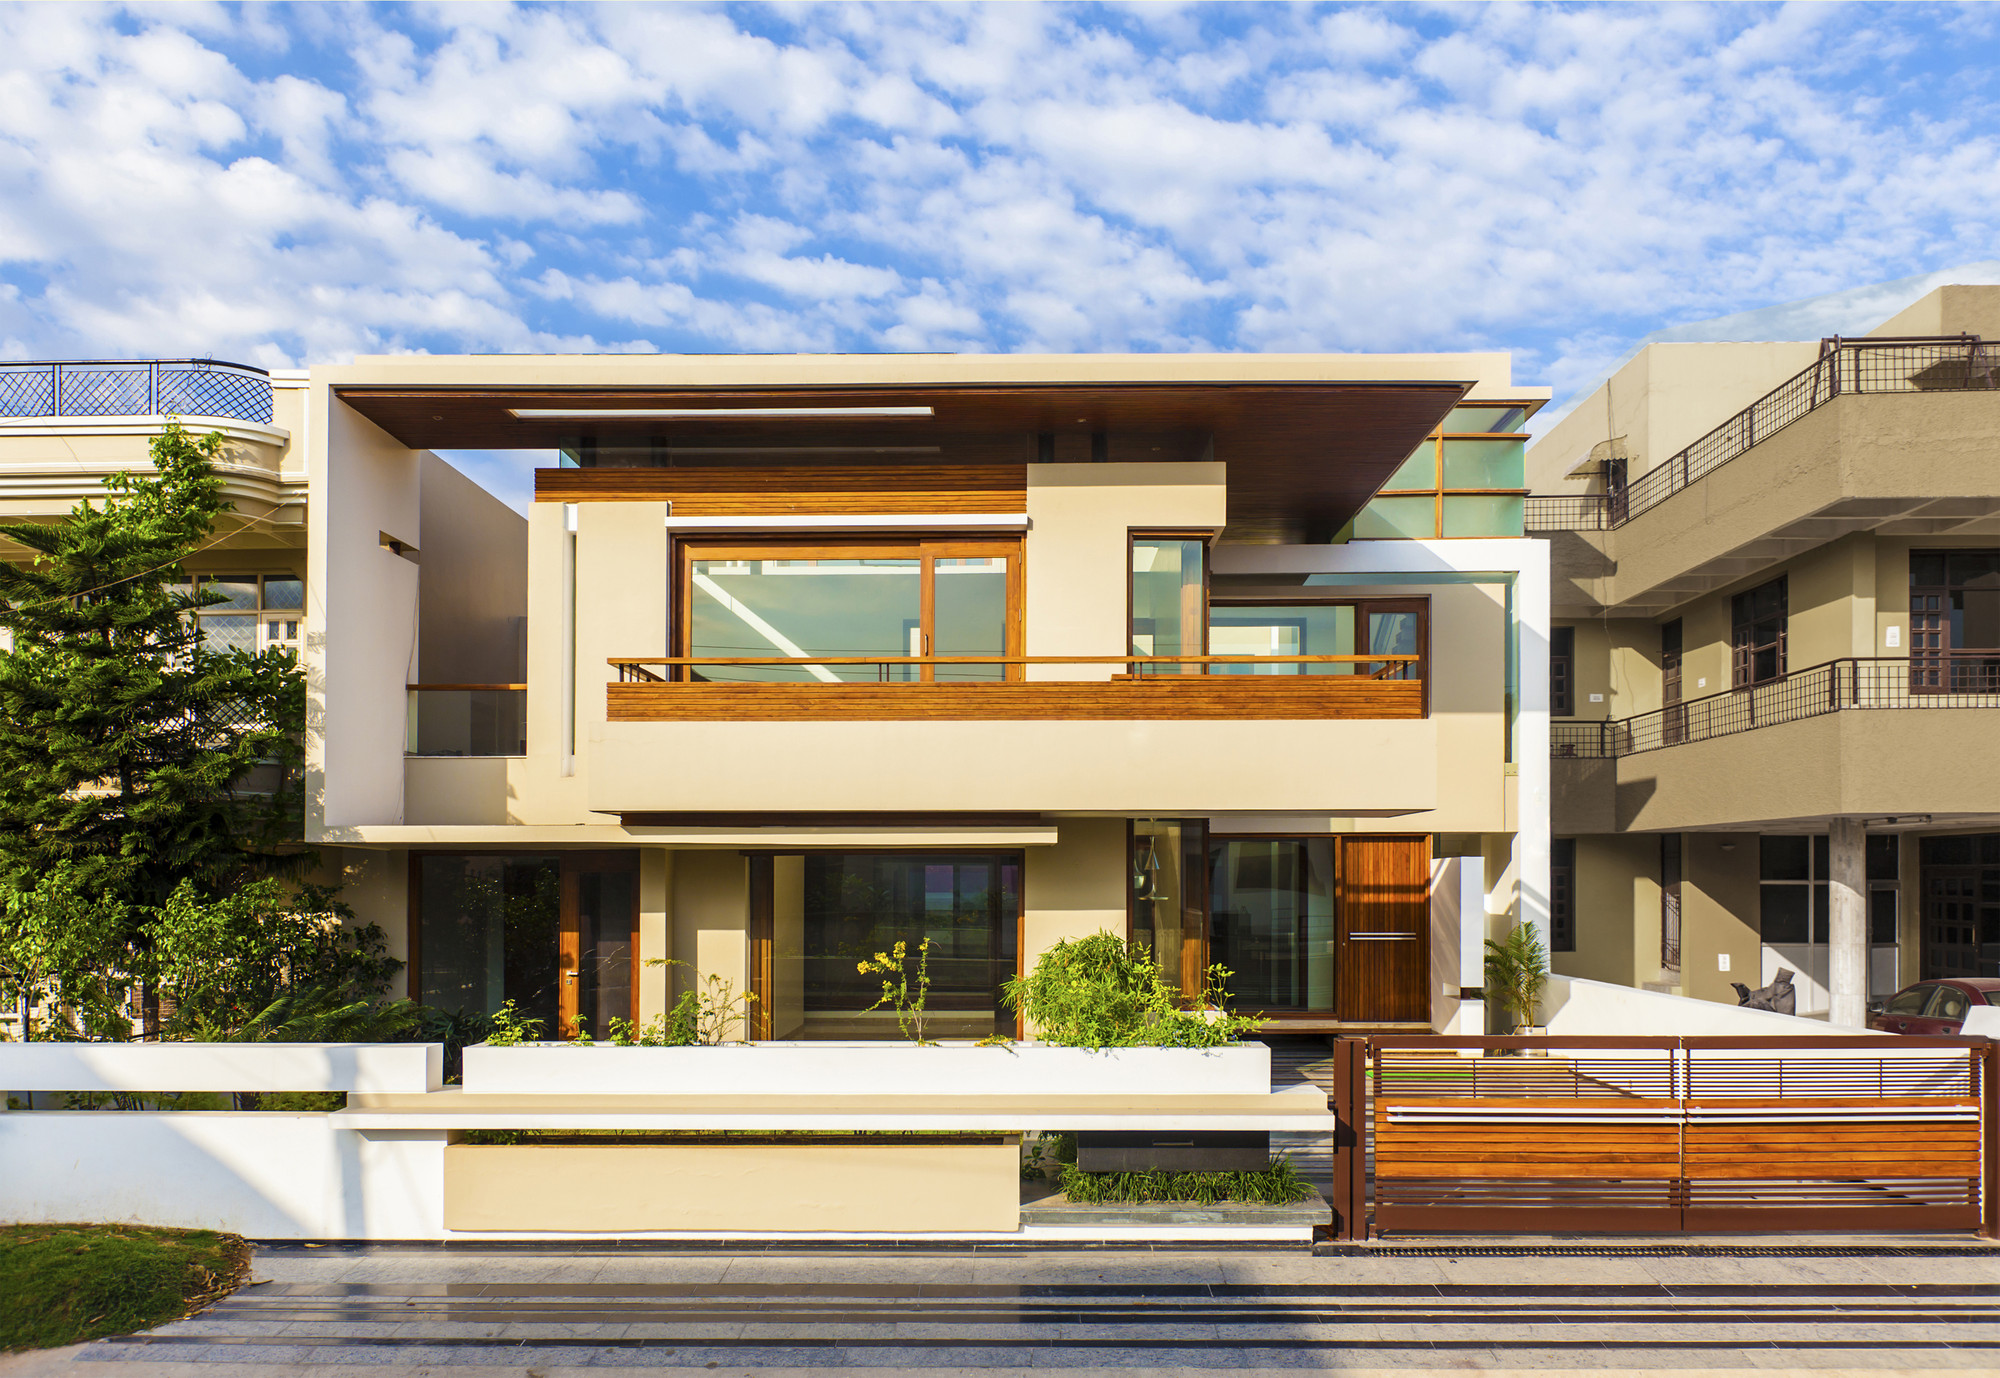 Twin Courtyard House / Charged Voids